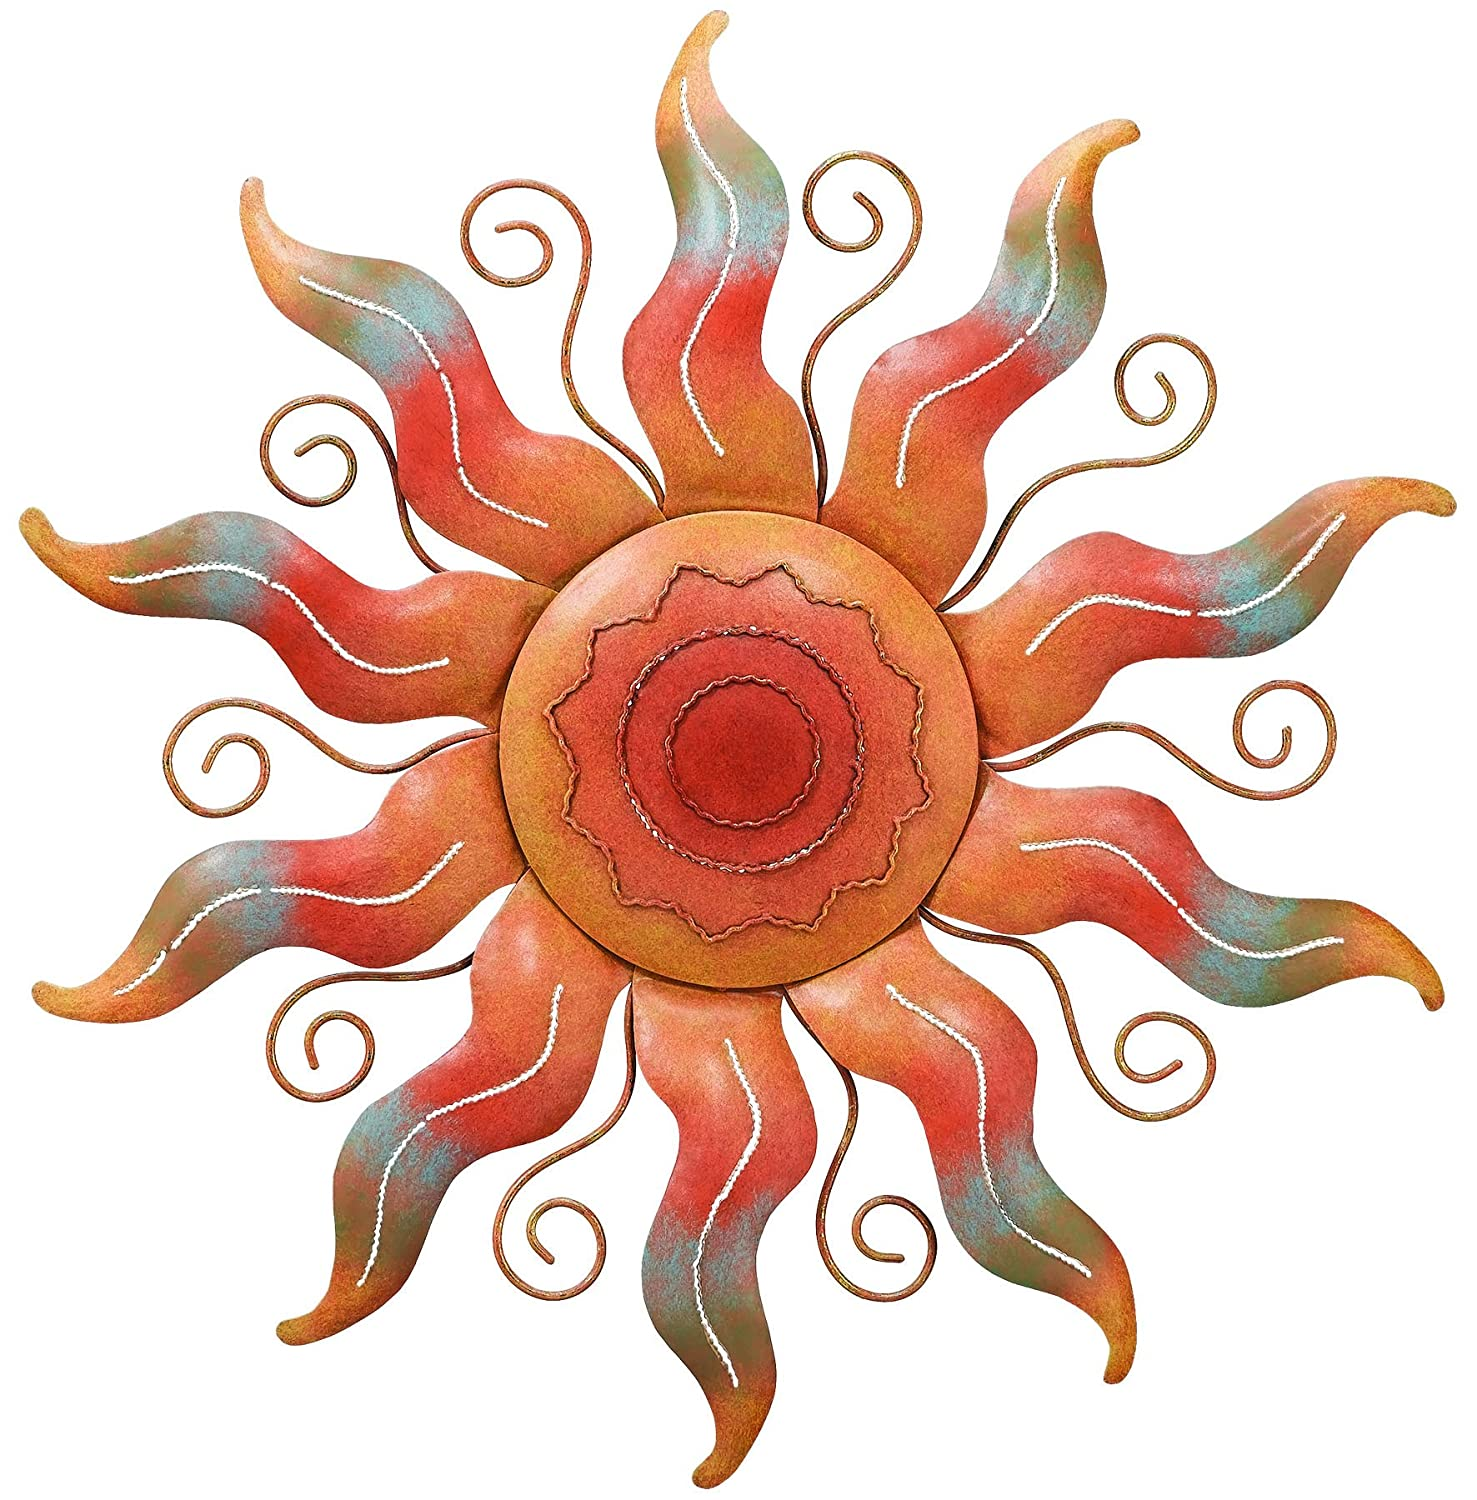 Amazon.com  Regal Art u0026Gift Sun Wall Decor  Wall Sculptures  Garden u0026 Outdoor  sc 1 st  Amazon.com & Amazon.com : Regal Art u0026Gift Sun Wall Decor : Wall Sculptures ...